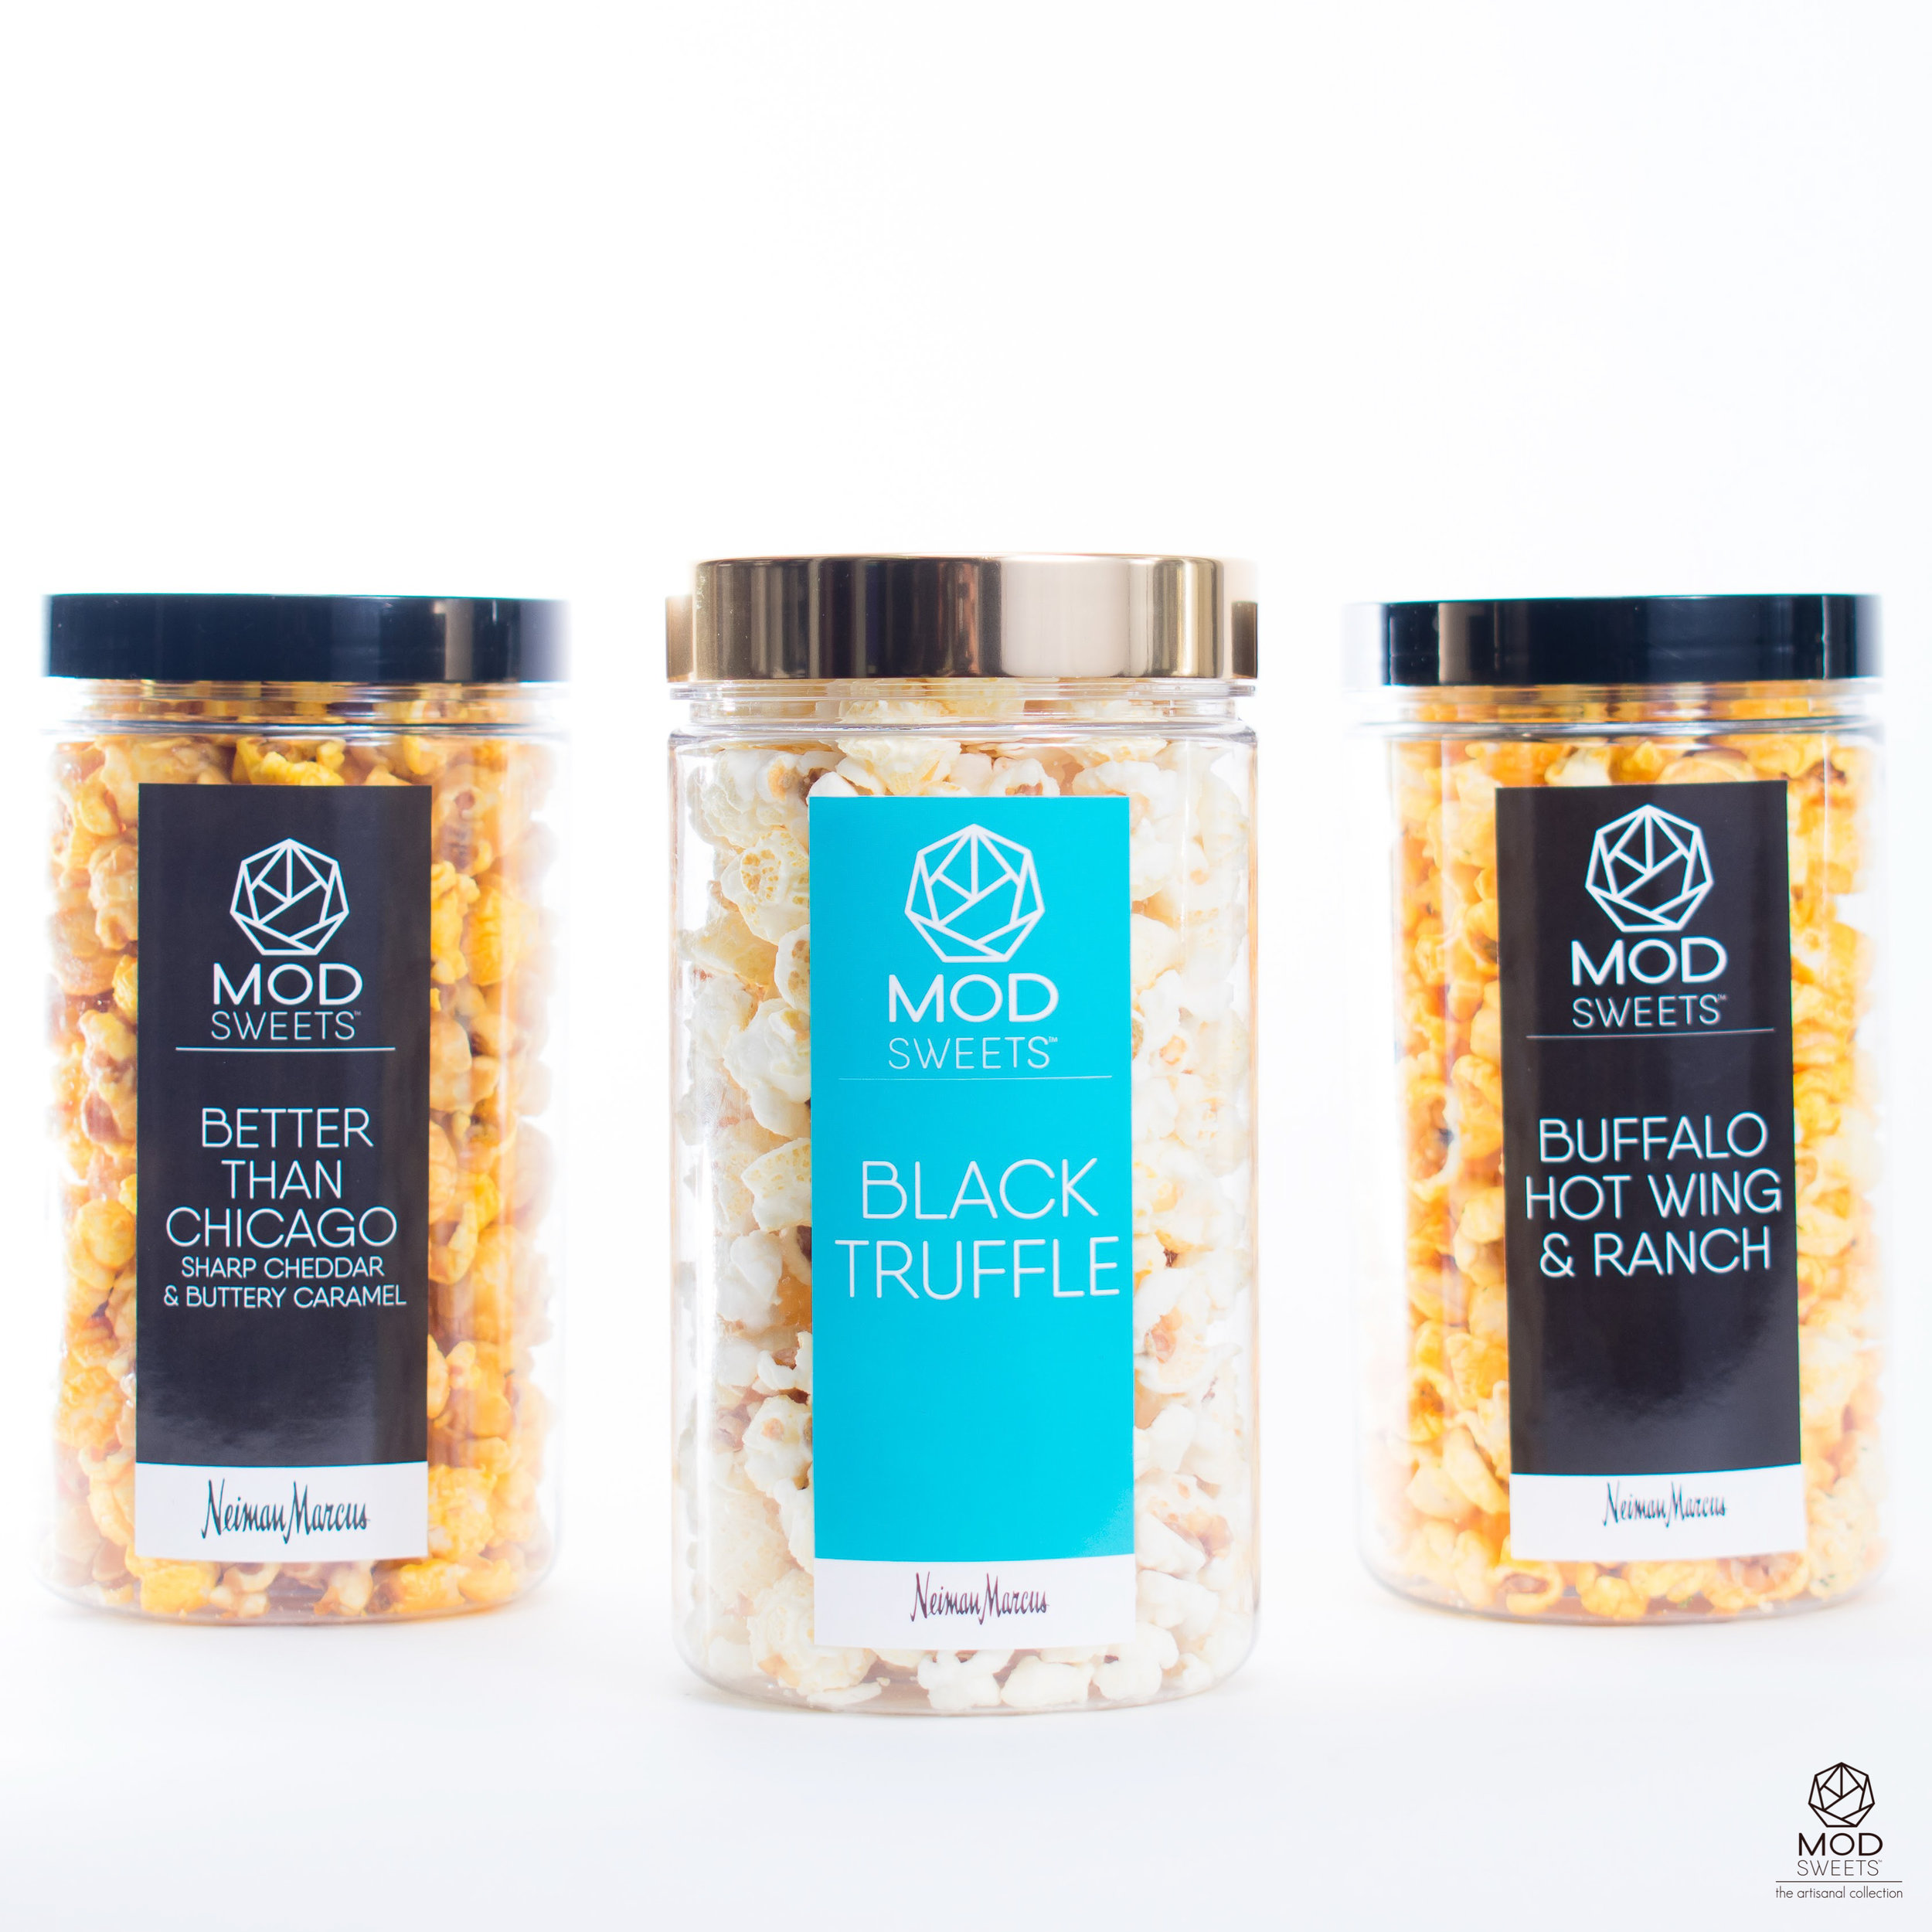 ModSweets - The Artisanal Collection - MOD 32oz. Gourmet Popcorn